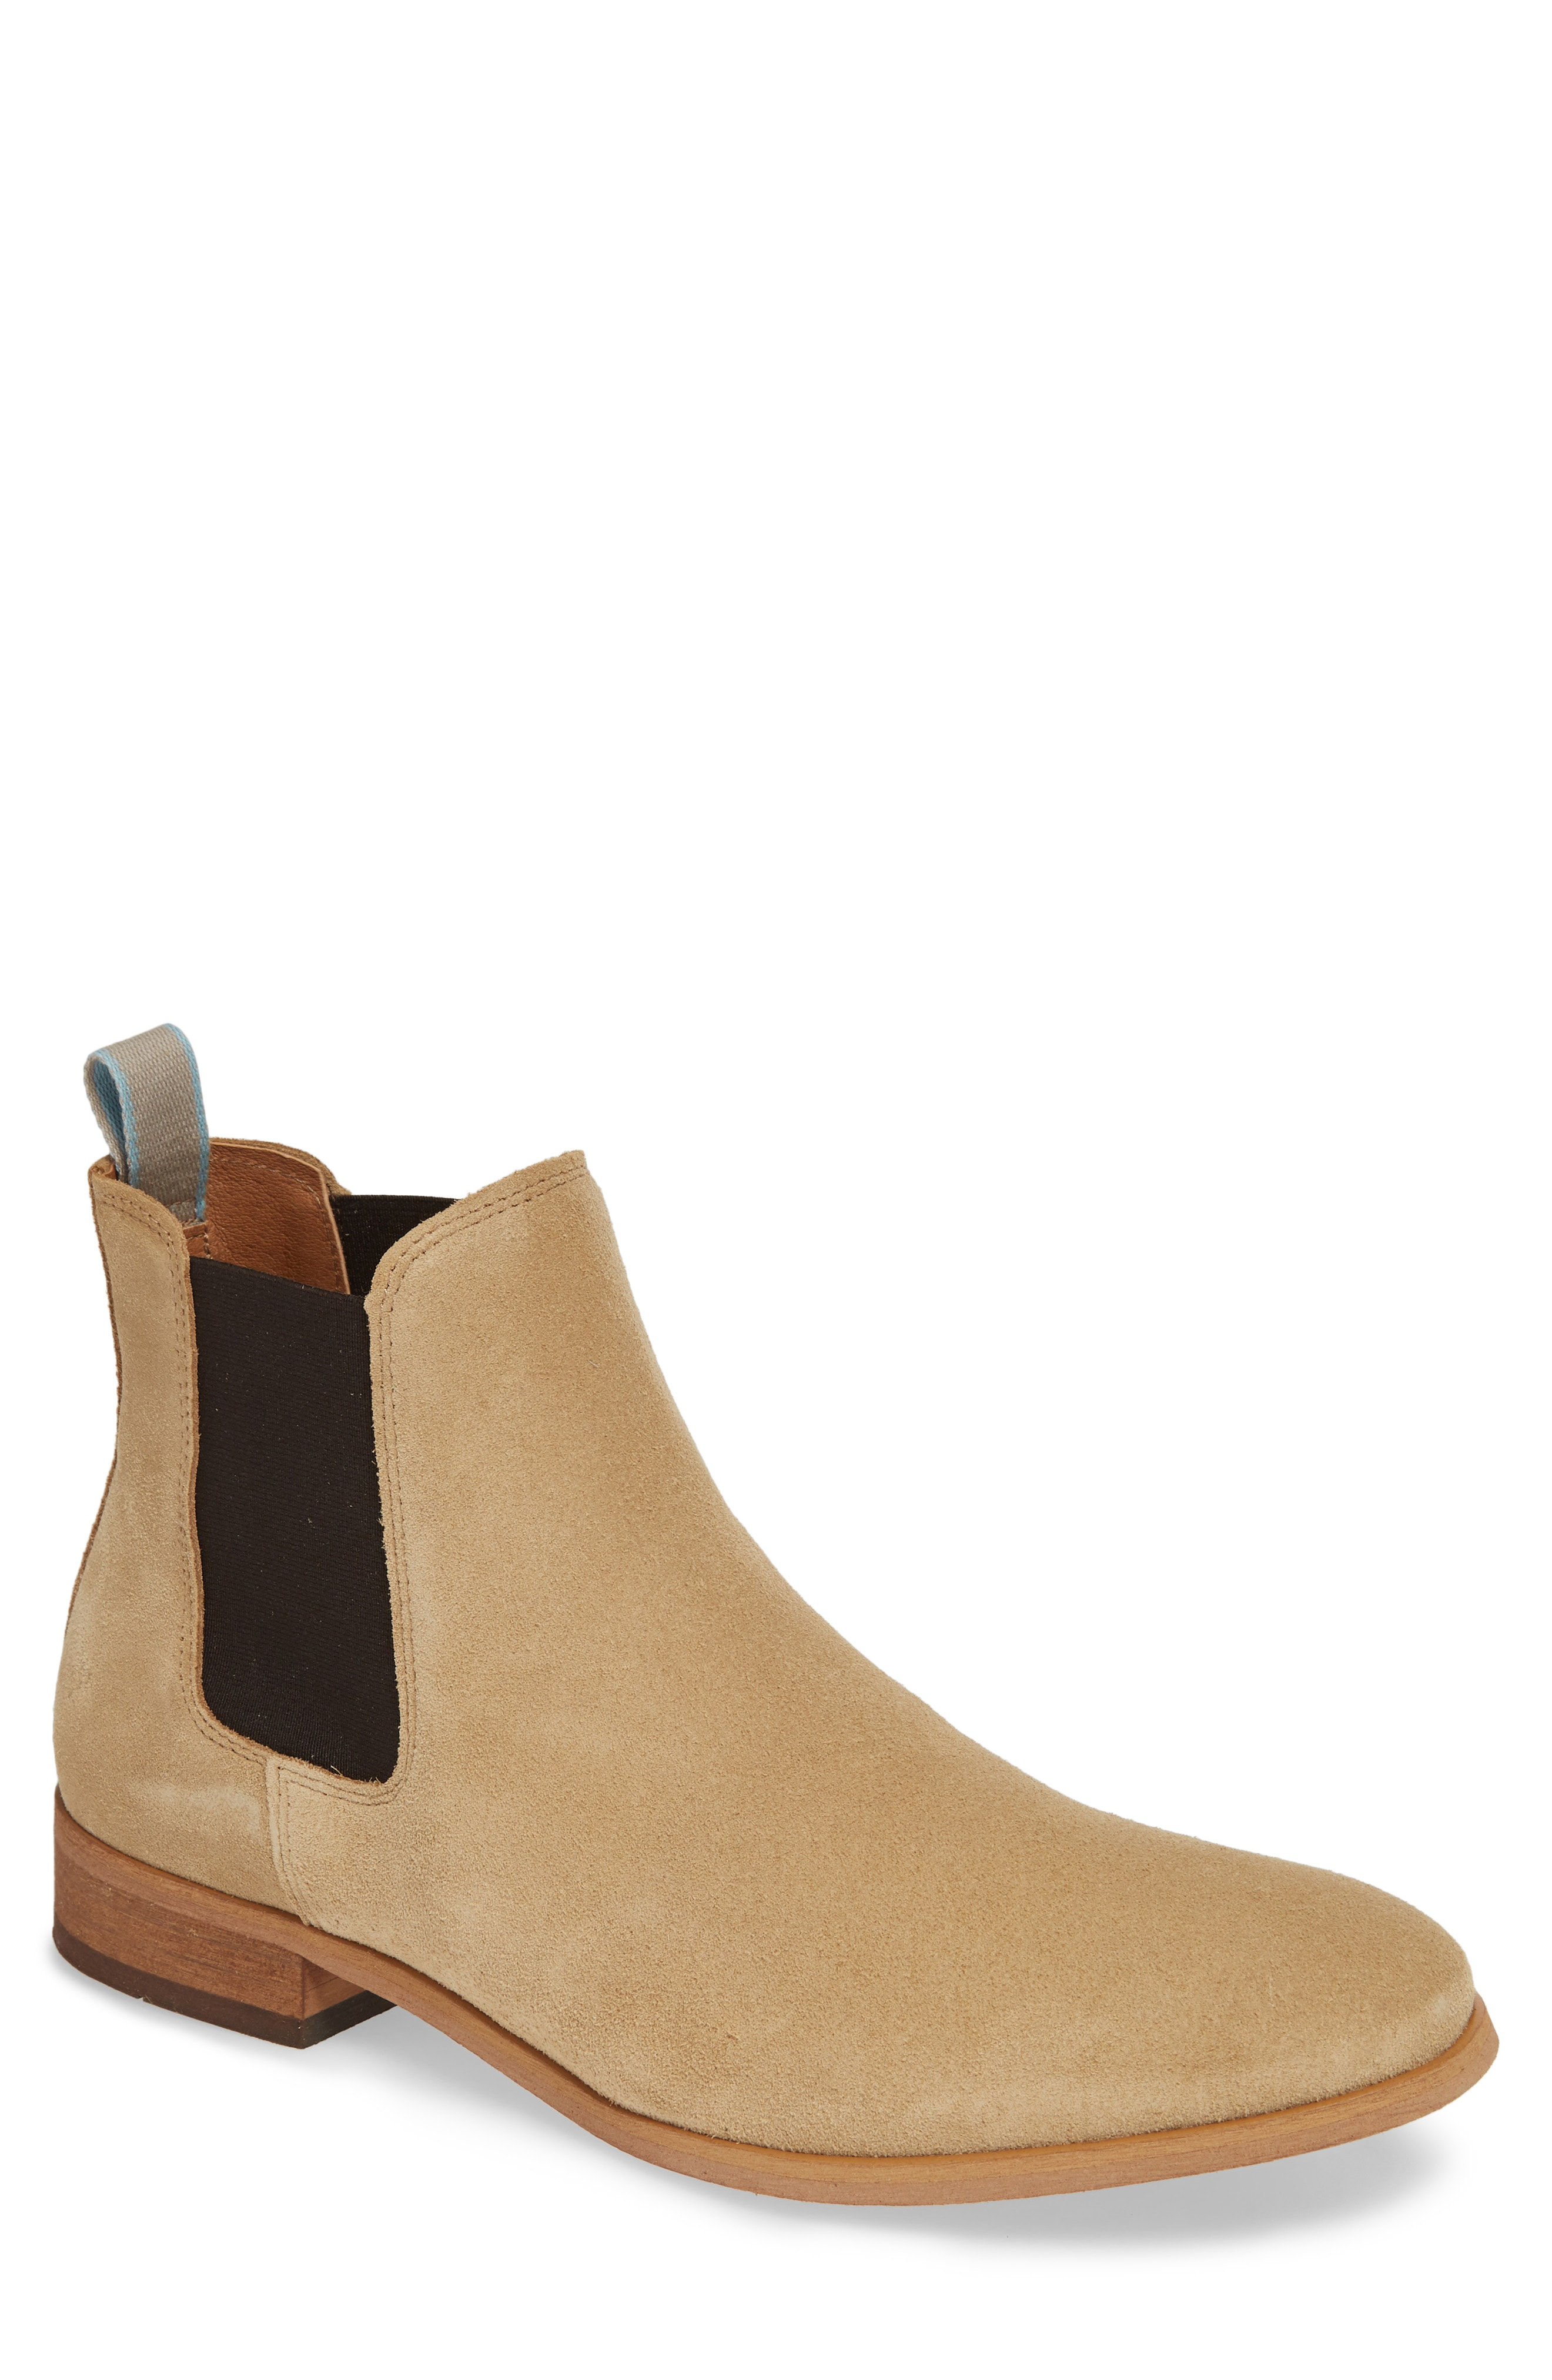 suede boots | Nordstrom